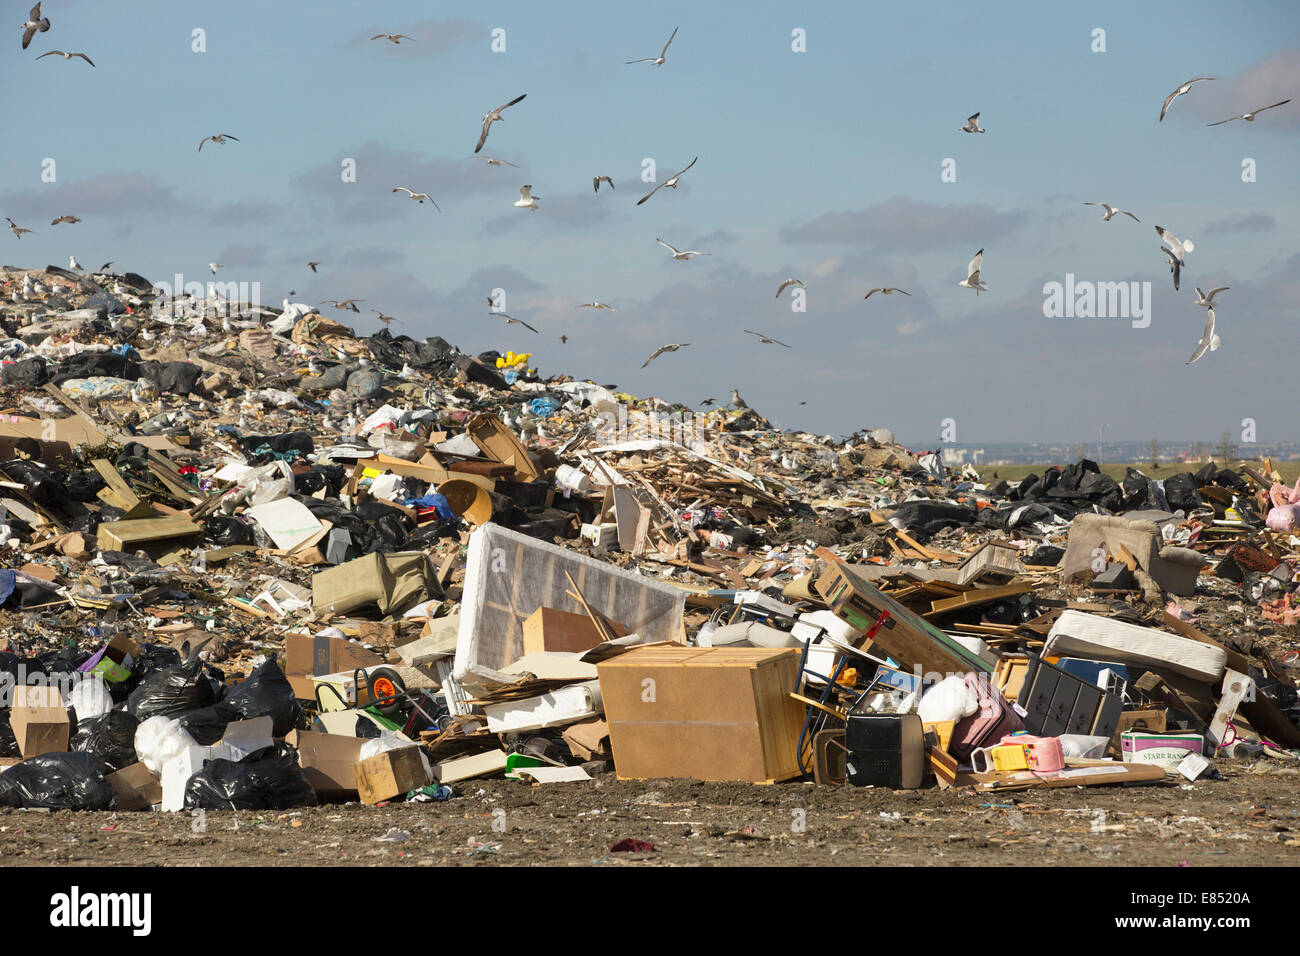 Aktive Deponie Zelle am Shepard Waste Management Facility. Stockbild